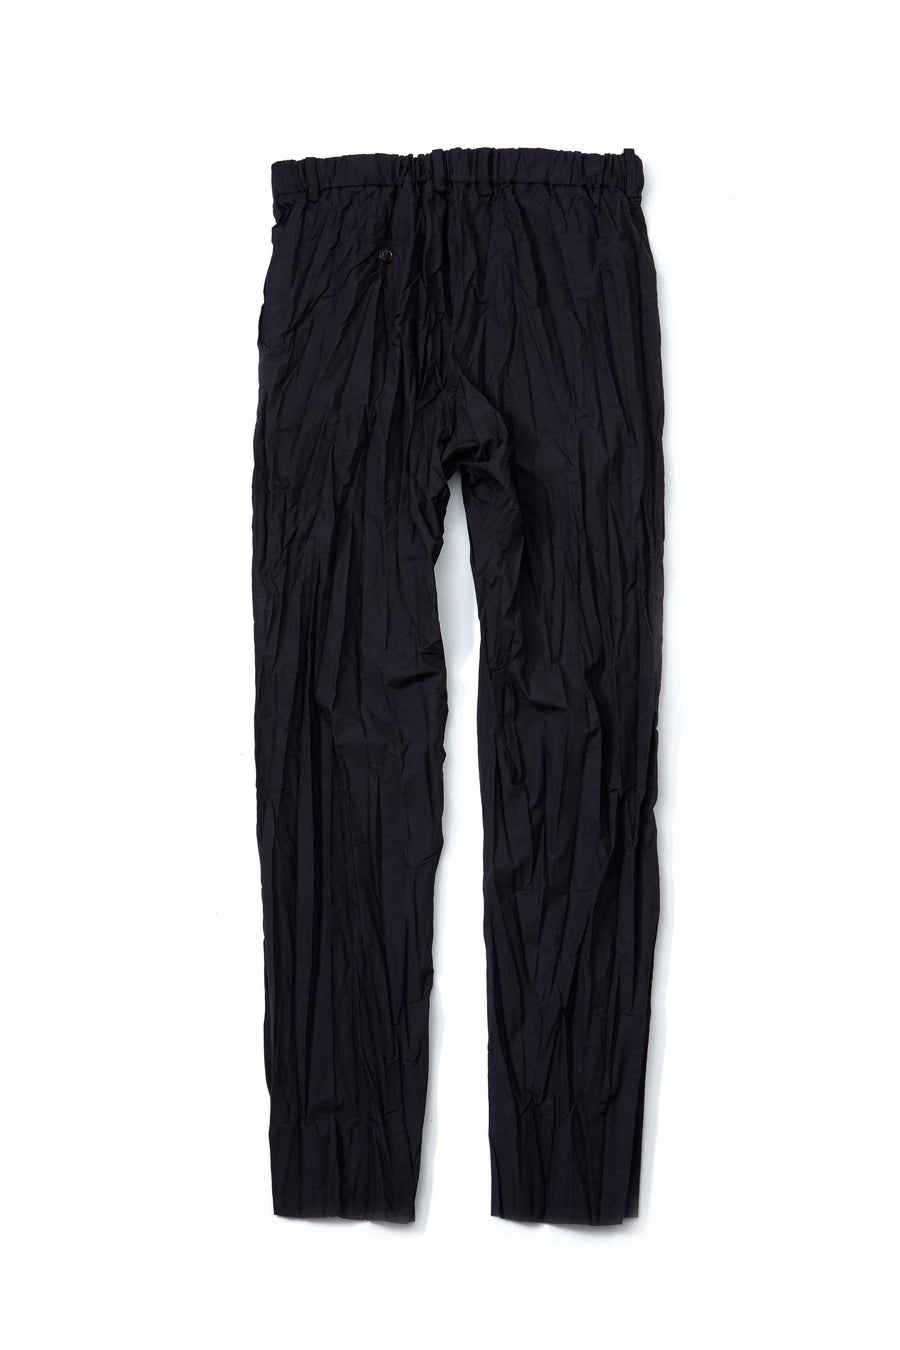 soe  Pleated Pants